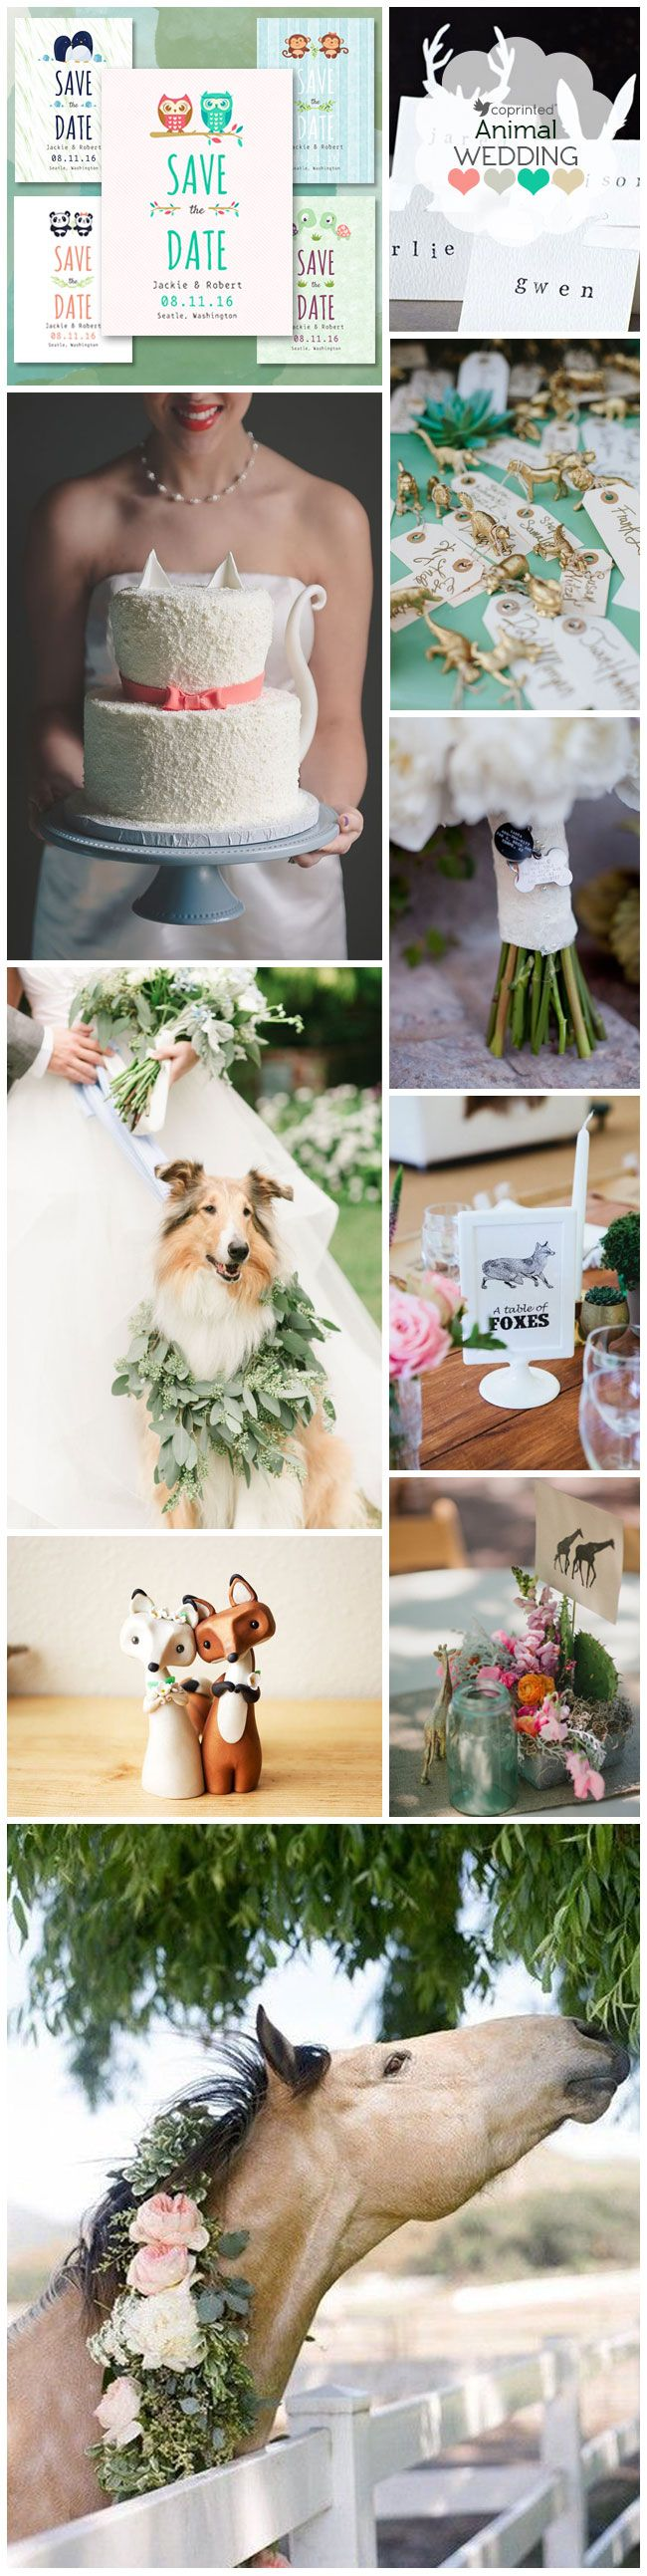 Weddings with animals: http://www.coprinted.com/blog/inspiration-board-animal-themed-wedding/